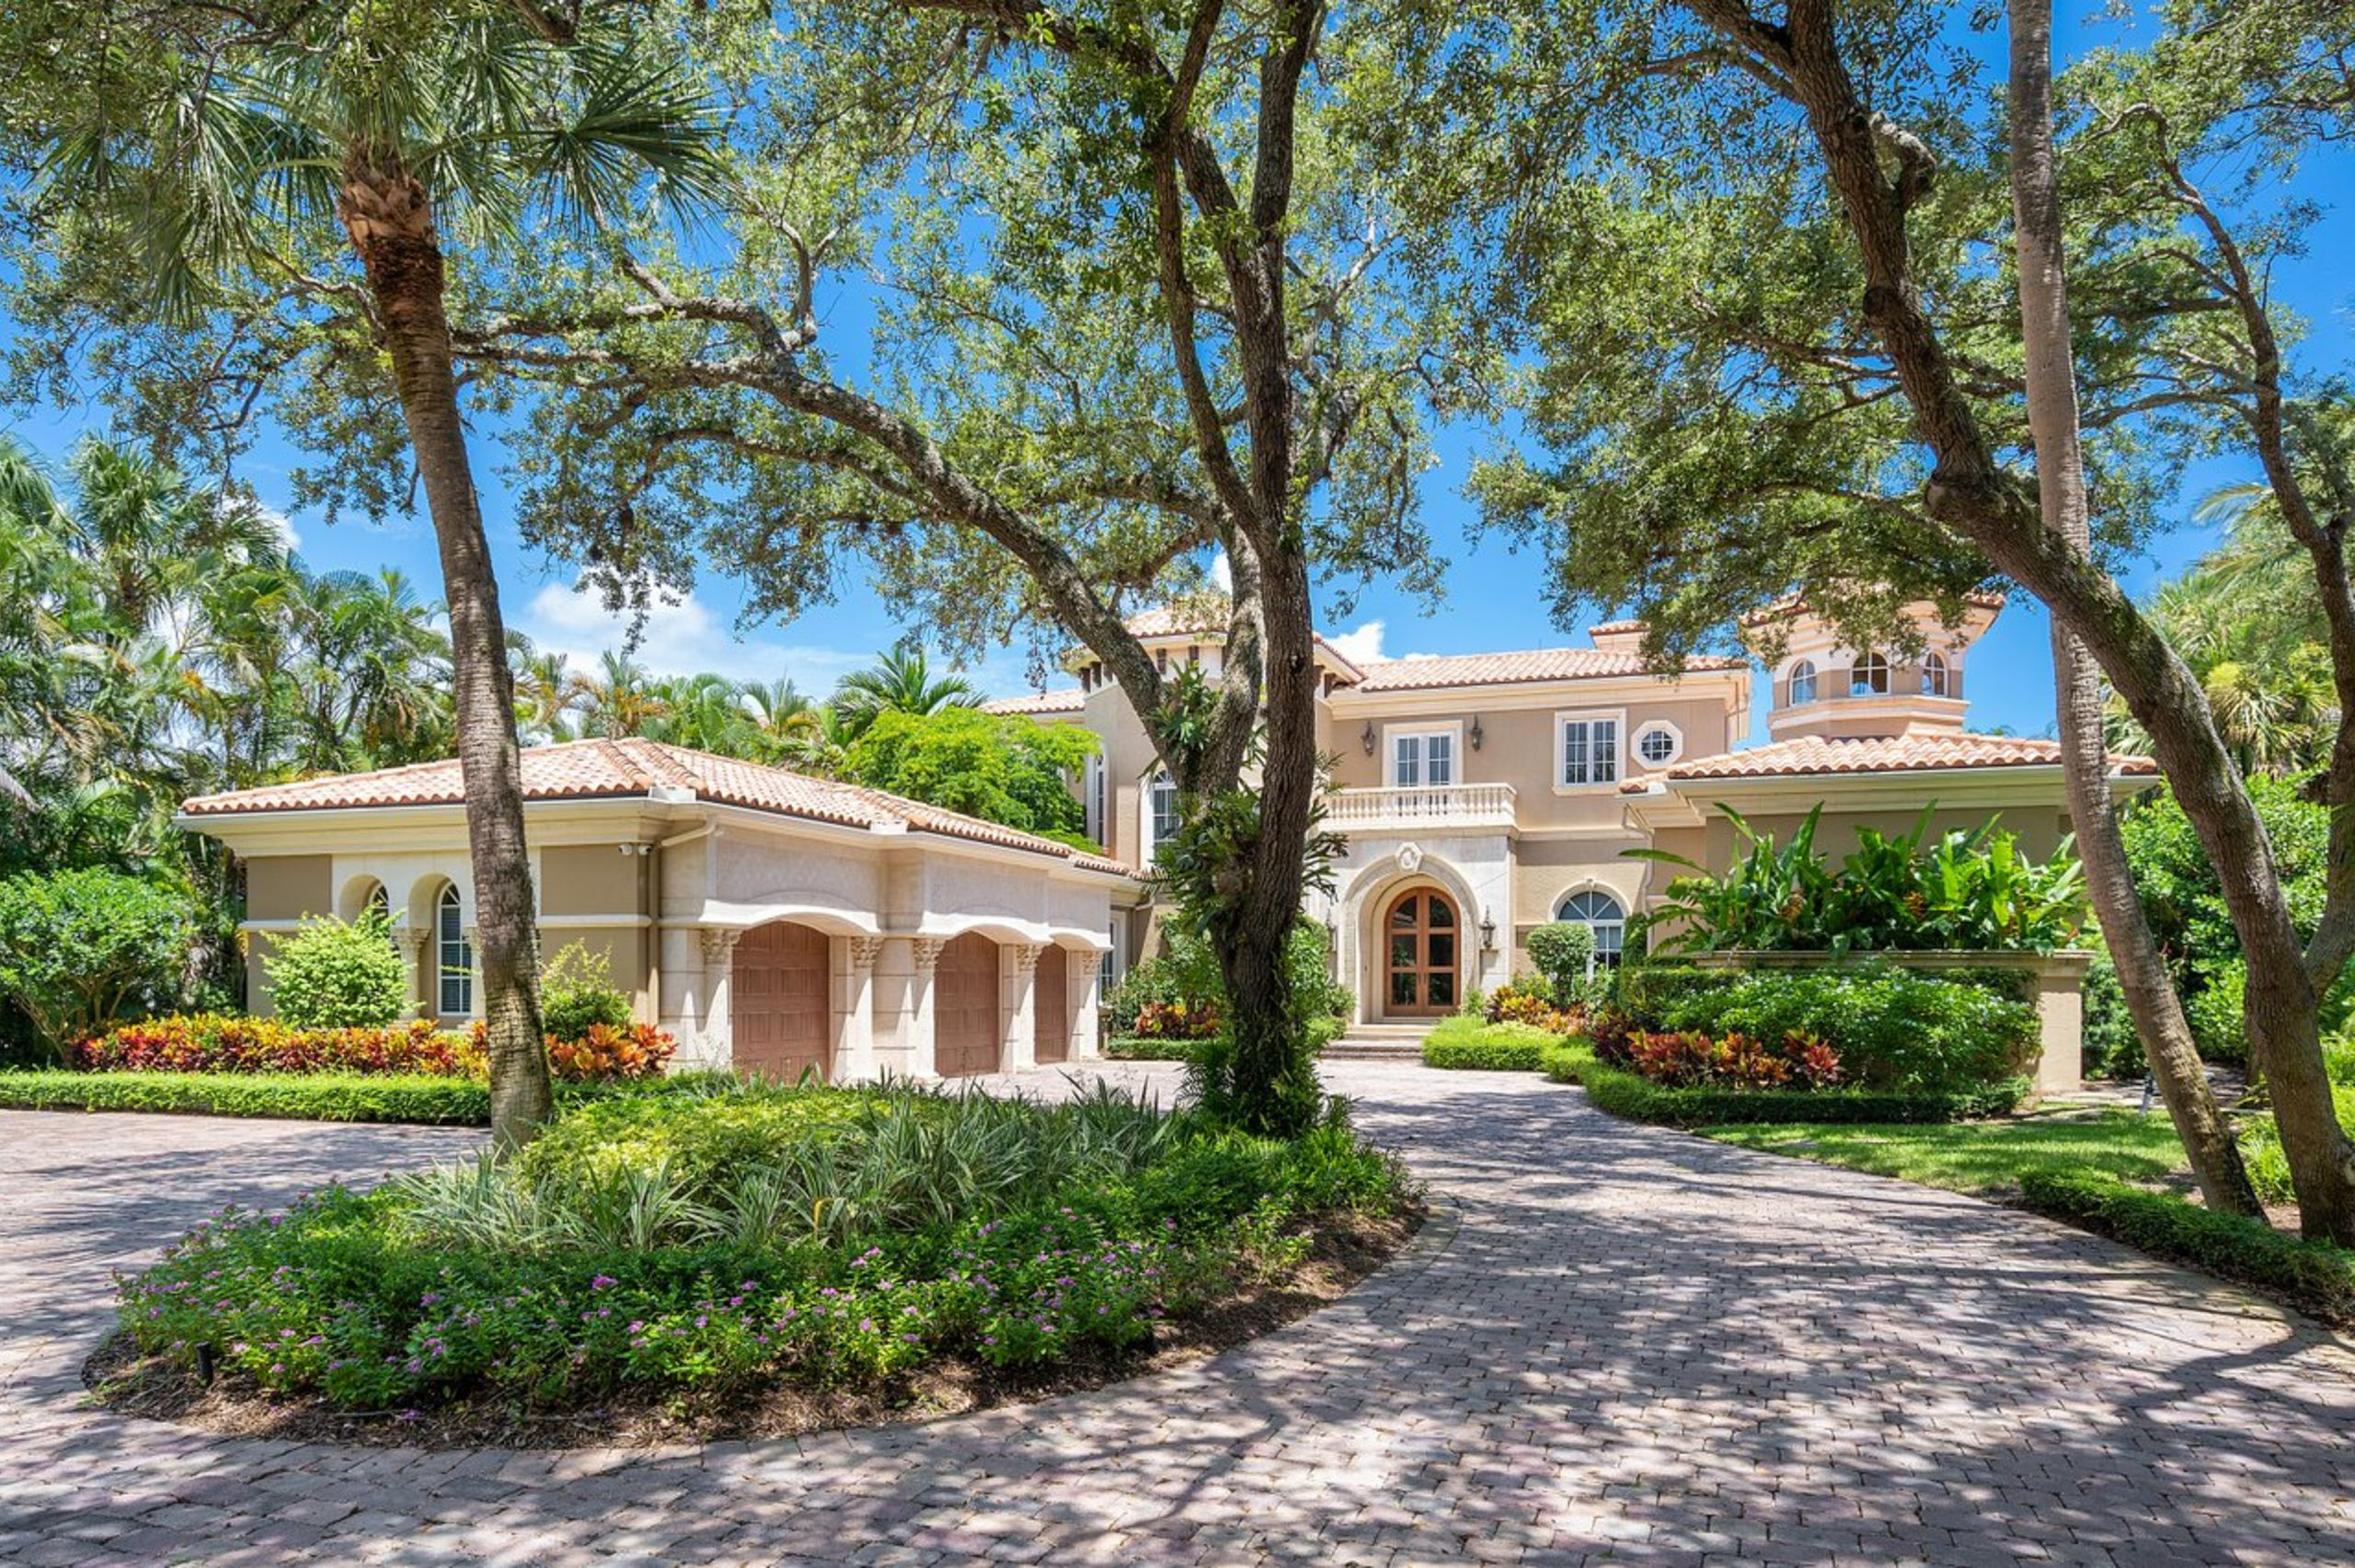 JUST LISTED!!! $7,350,000.00 Click for video